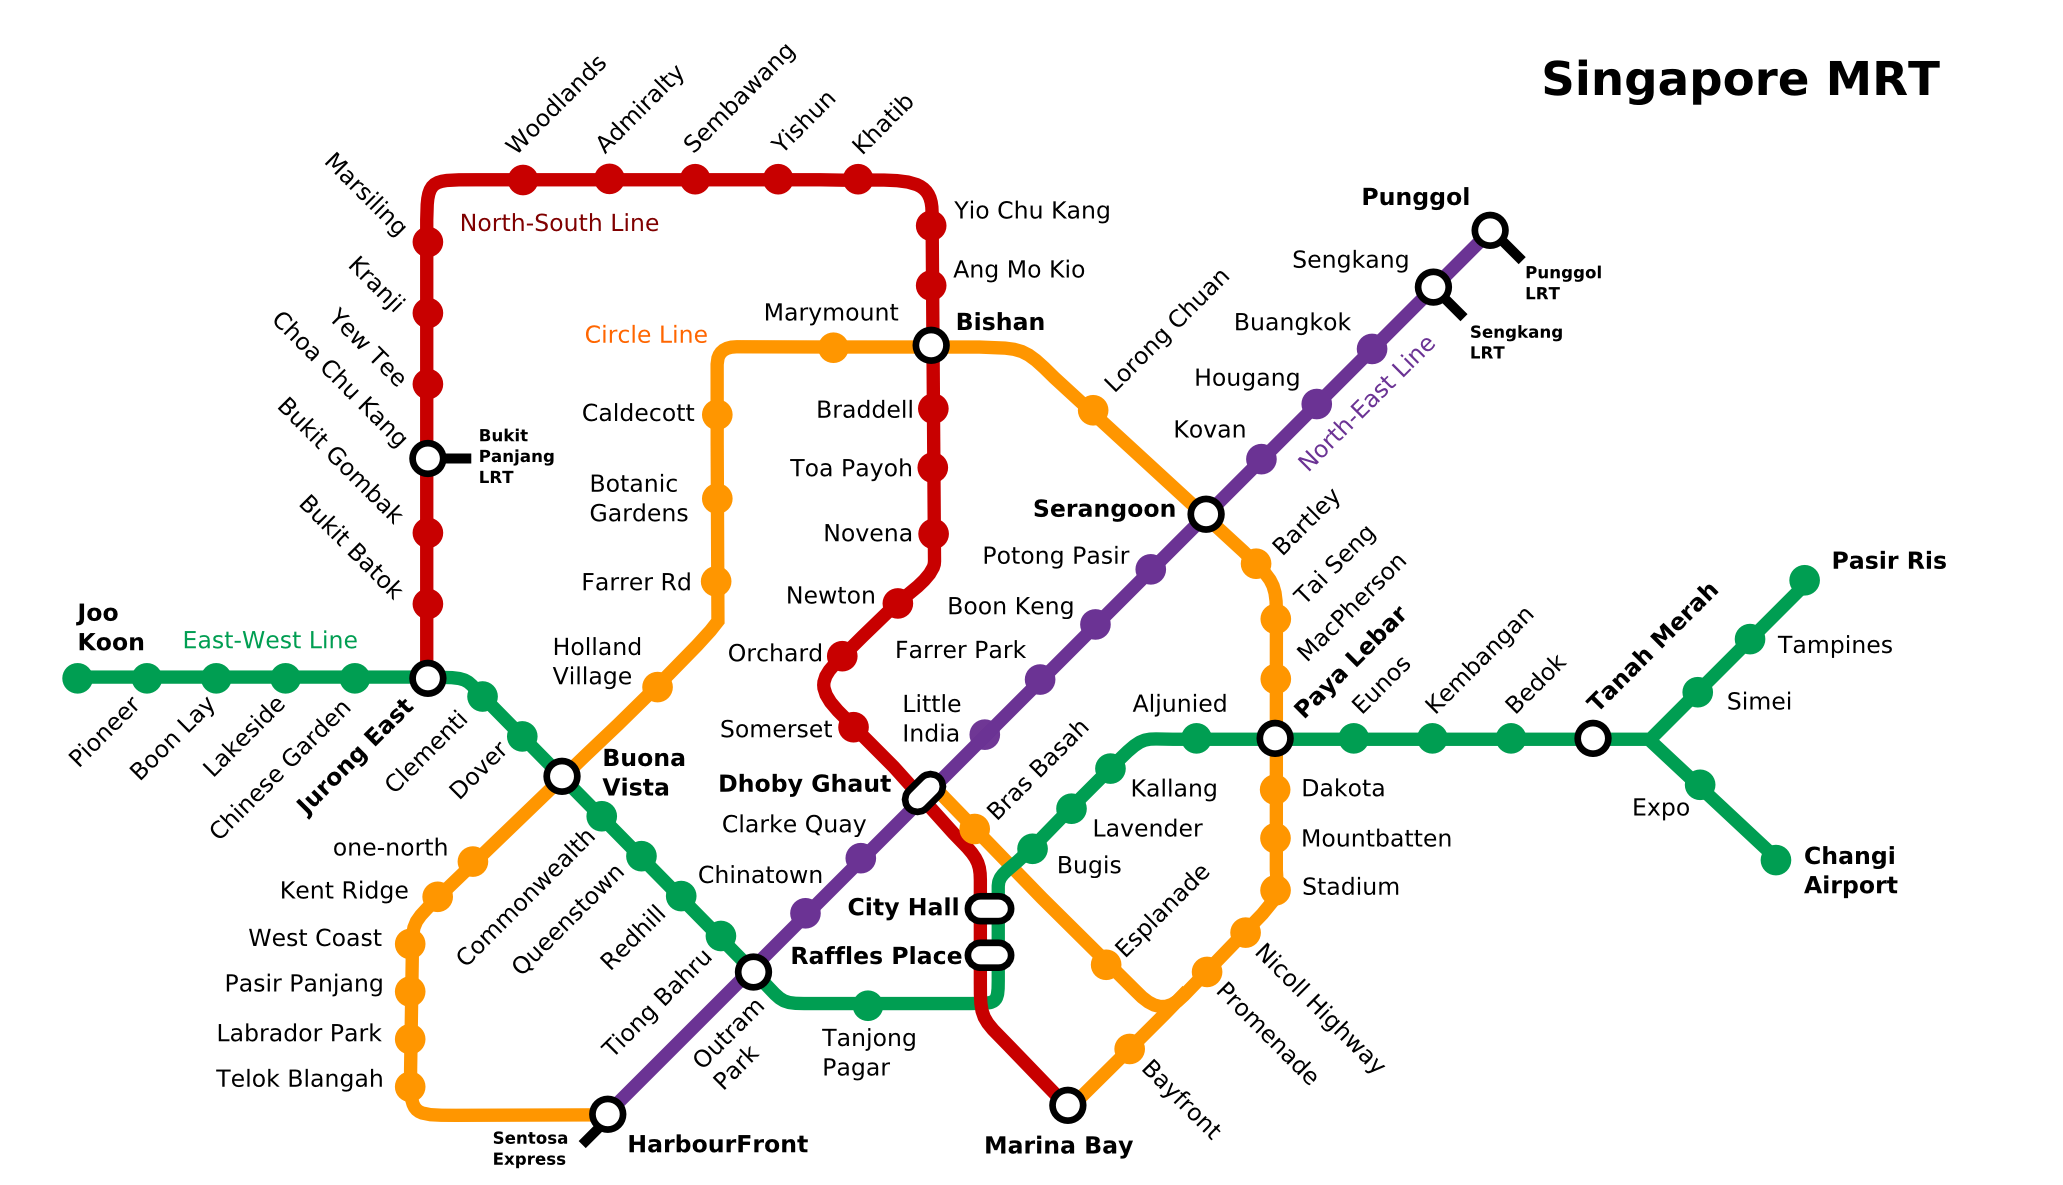 Detail Singapore City MRT & LRT Route Map,Route map of Singapore City MRT & LRT,singapore mrt pass fares photos travel time journey planner,Singapore MRT East West Line Circle Line North South Line North East Line Line Stations Networks Map